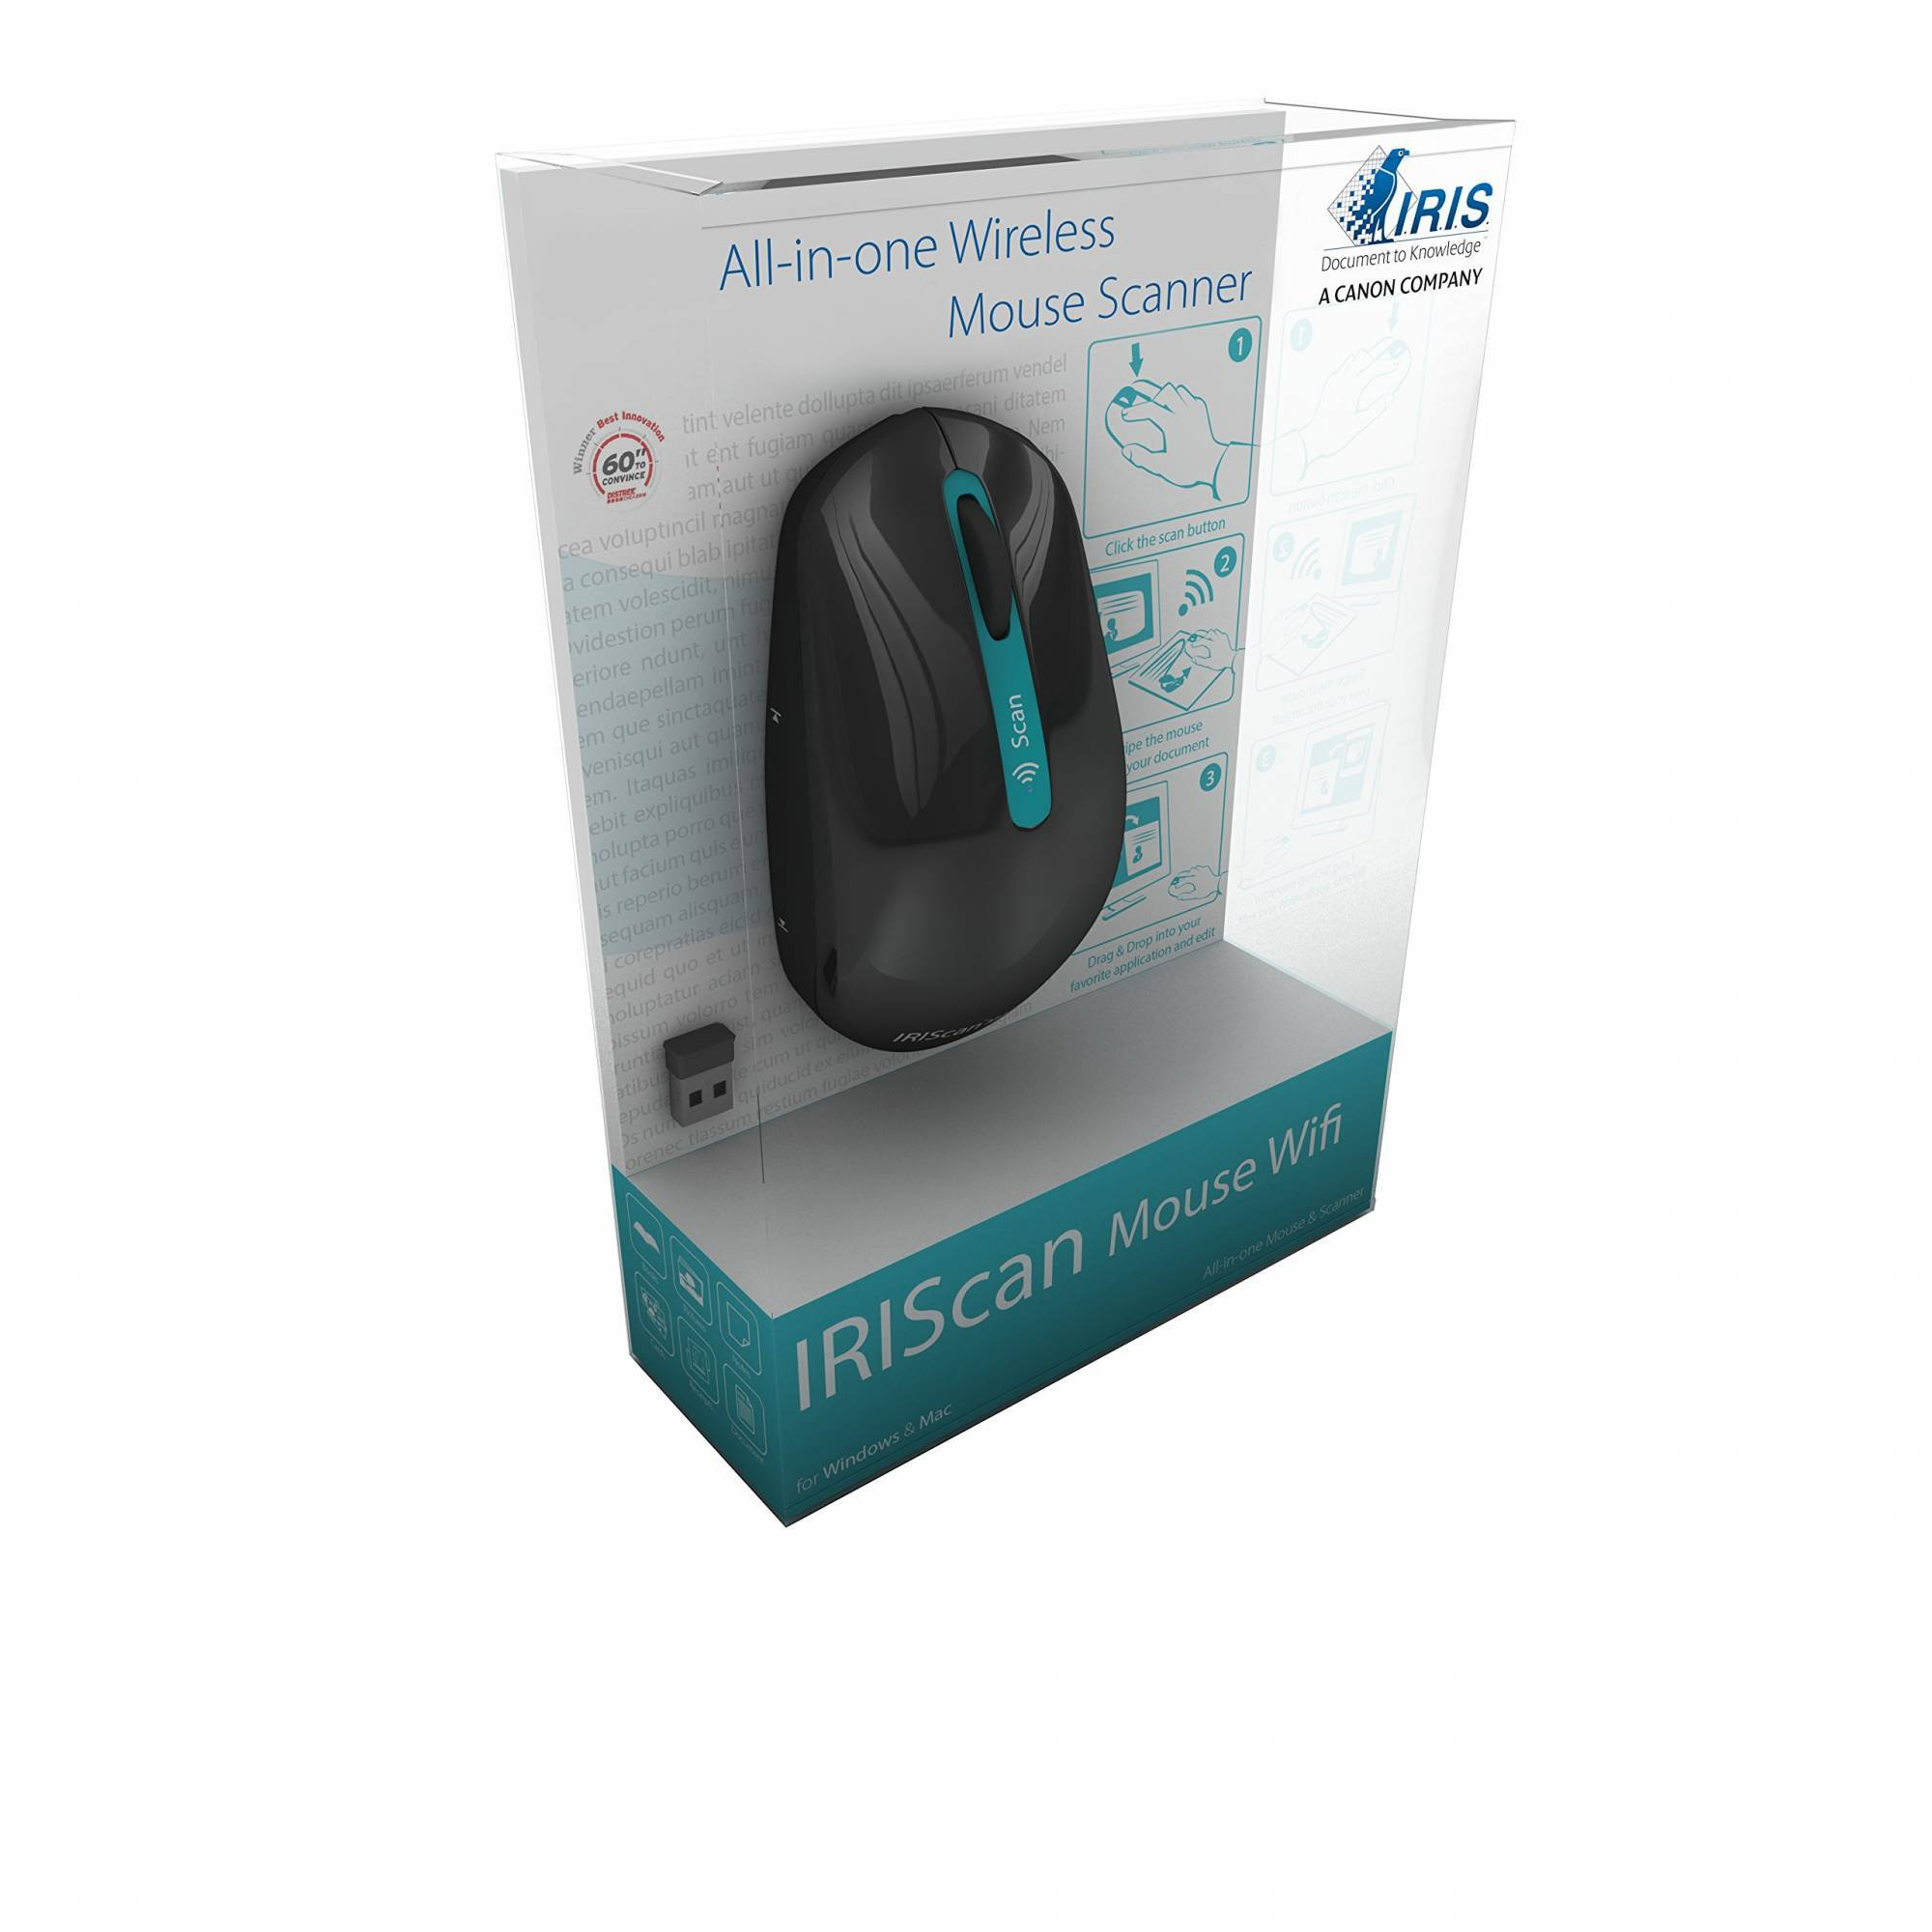 IRIScan Mouse - Scanner & Mouse